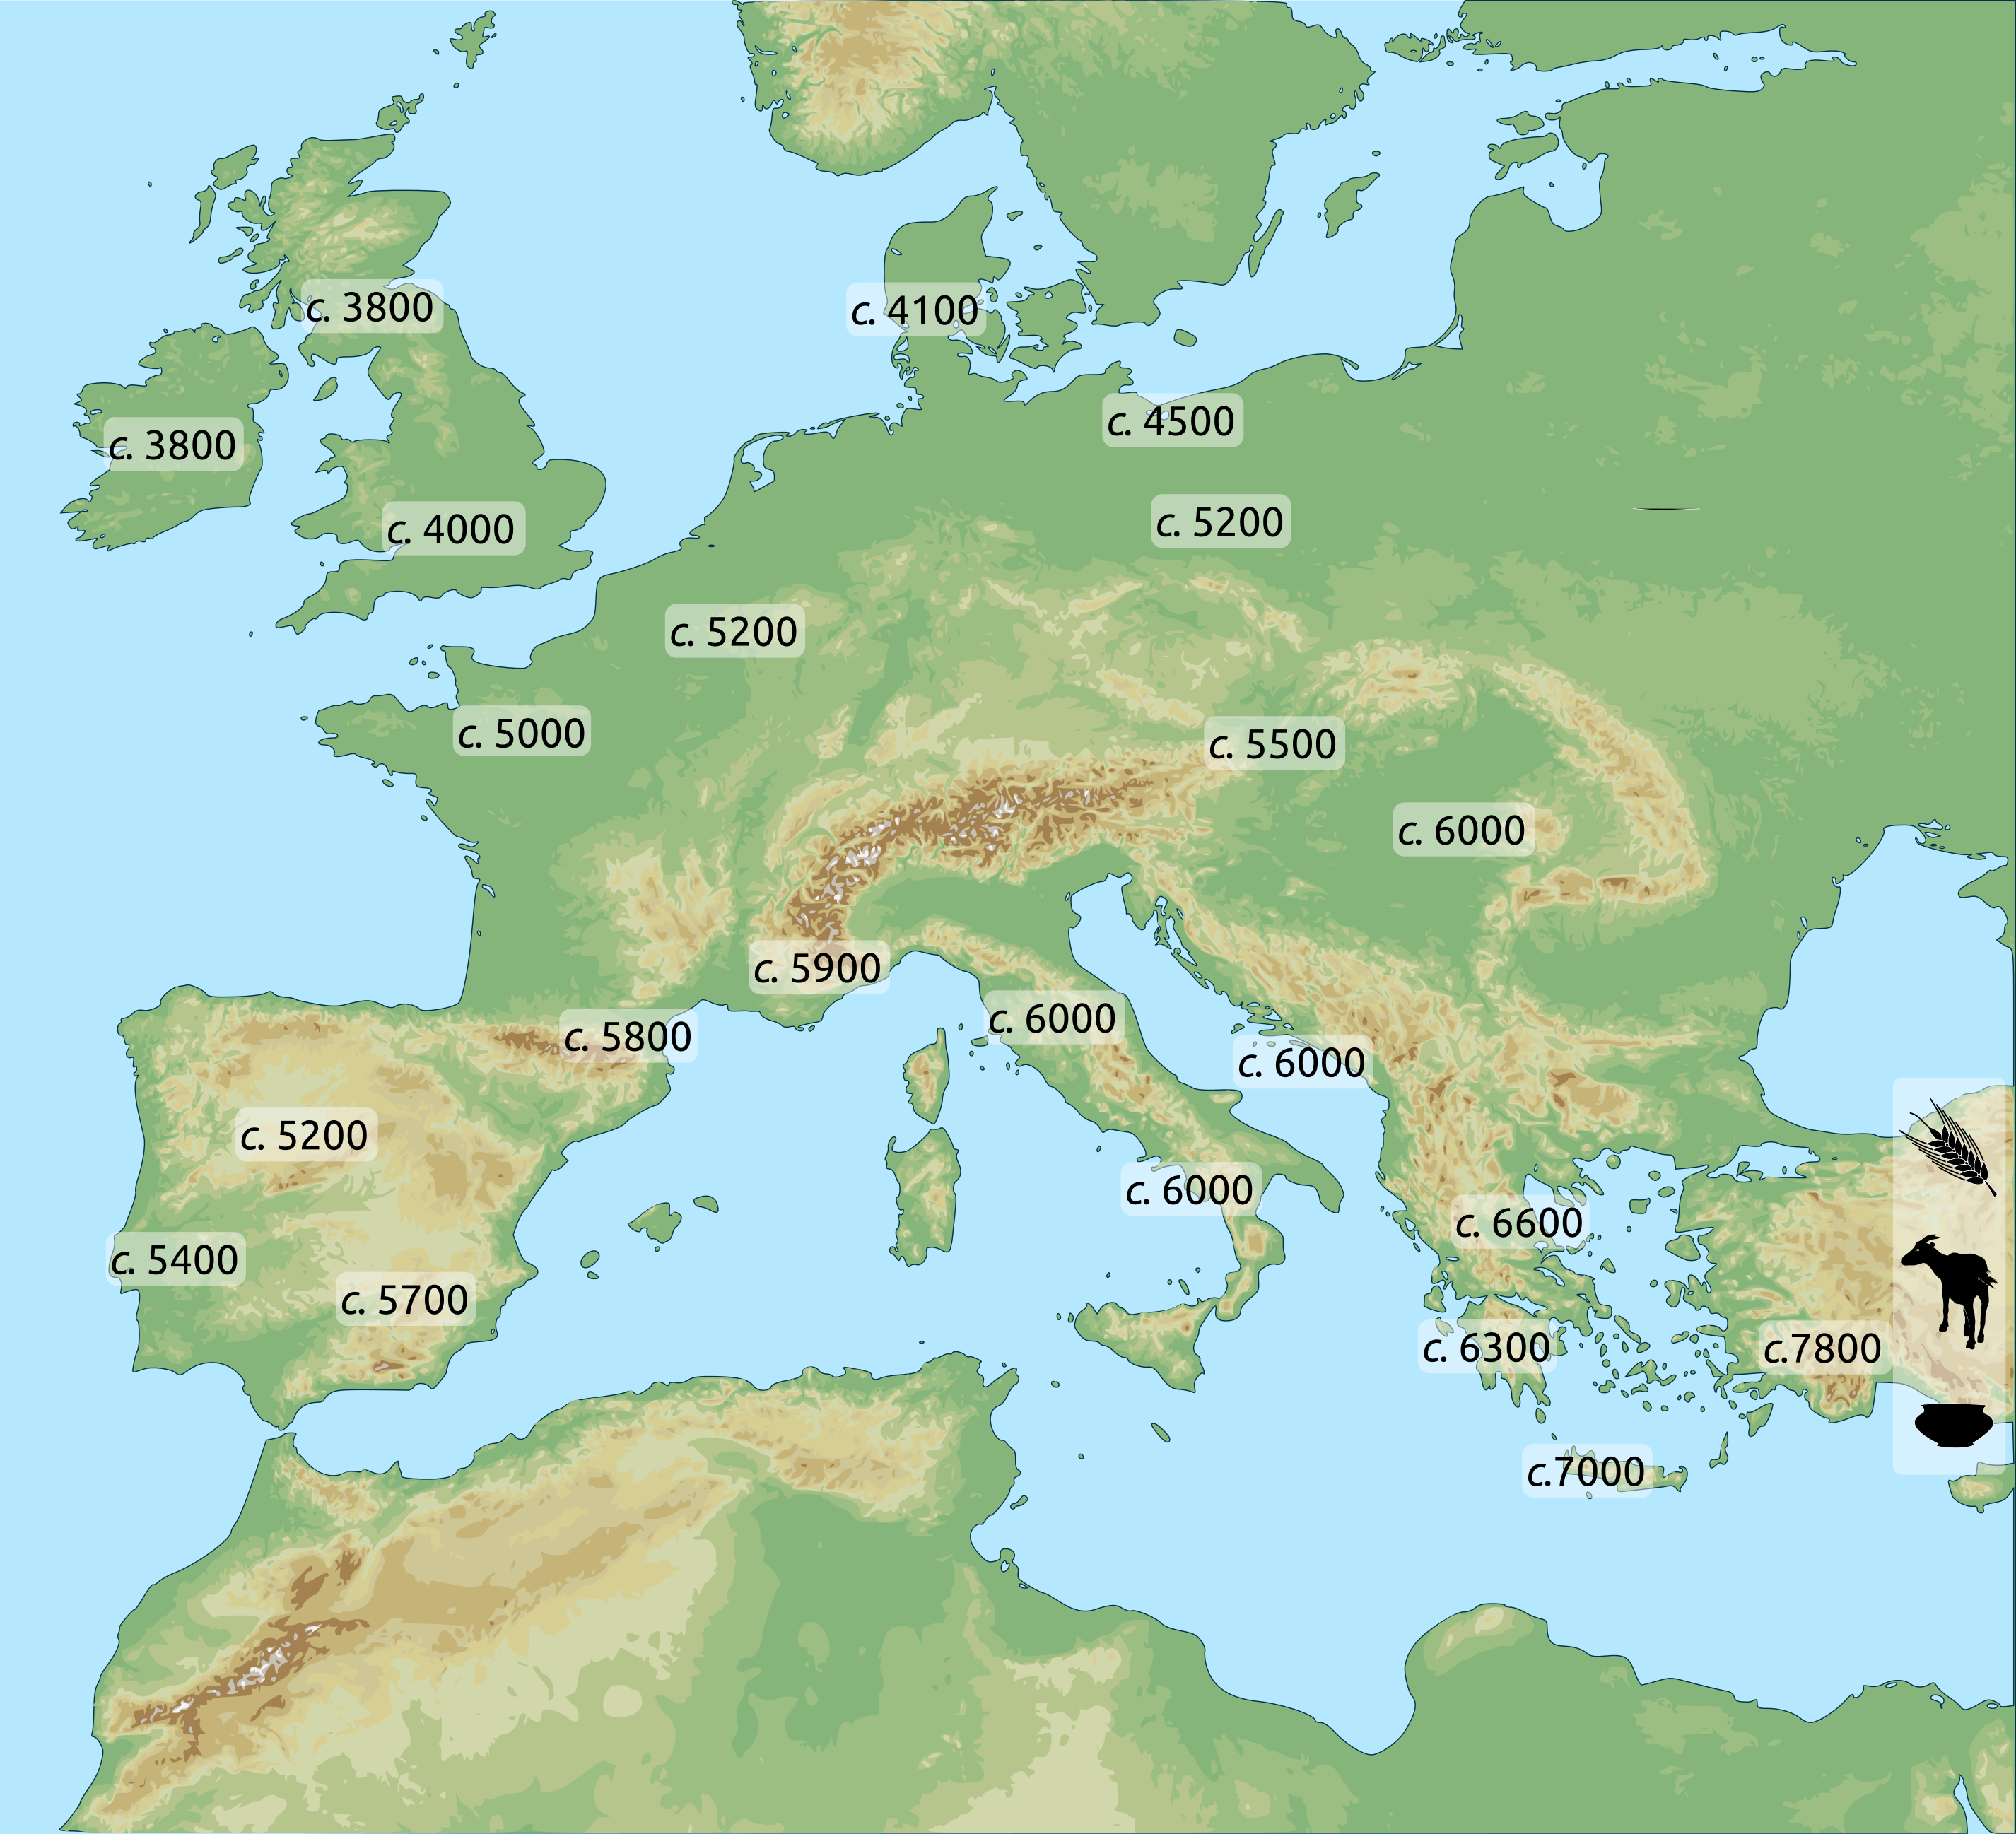 Map Of Uk 5000 Years Ago.The Neolithic Enclosures In Neolithic Europe